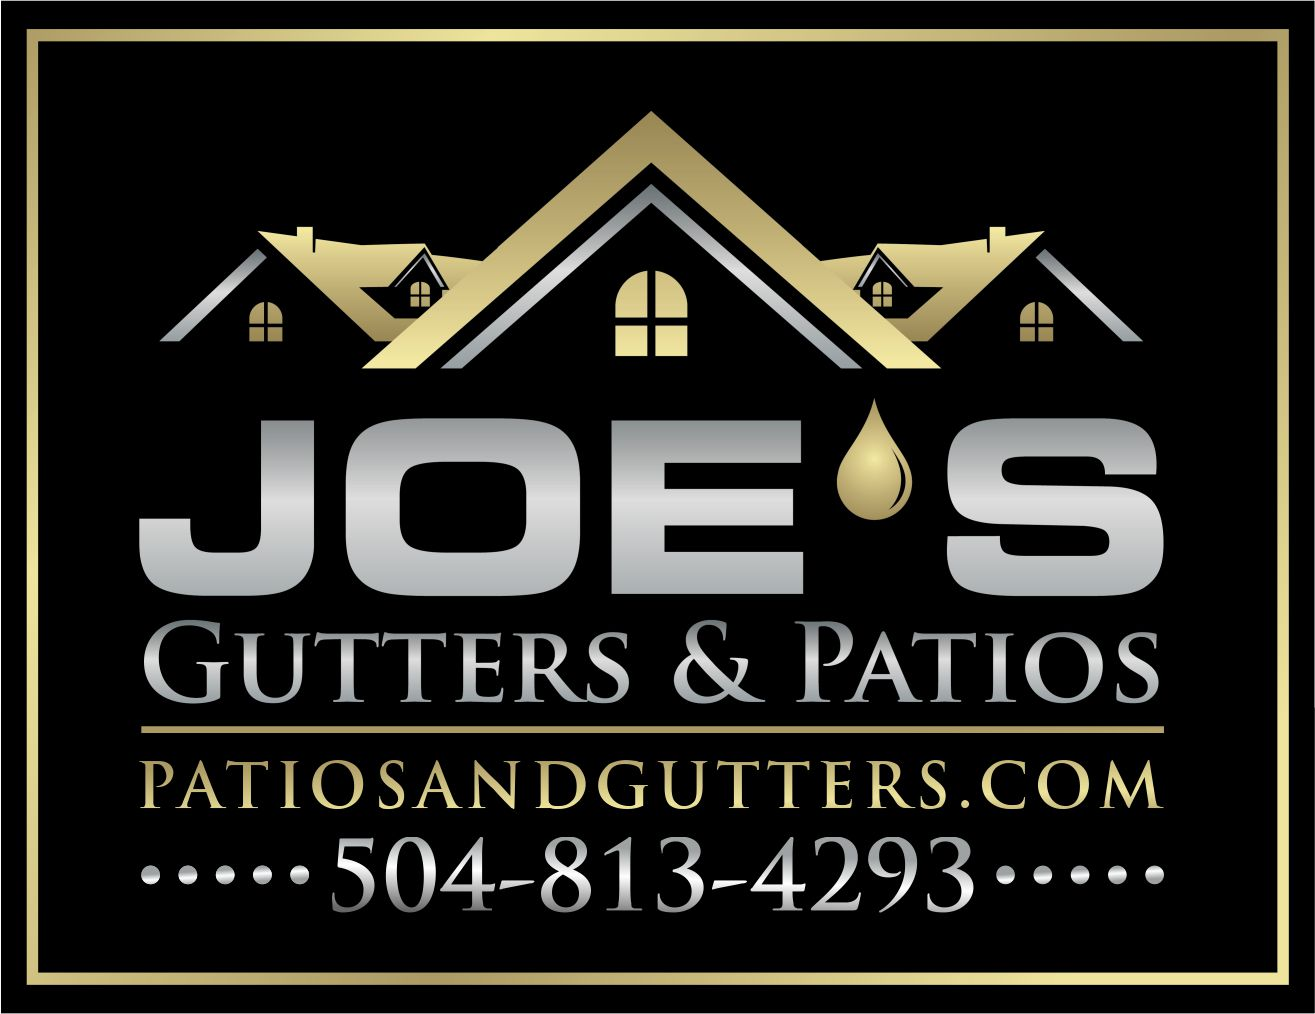 Logo Design by Raymond Garcia - Entry No. 11 in the Logo Design Contest Imaginative Logo Design for Joes Gutters & Patios.